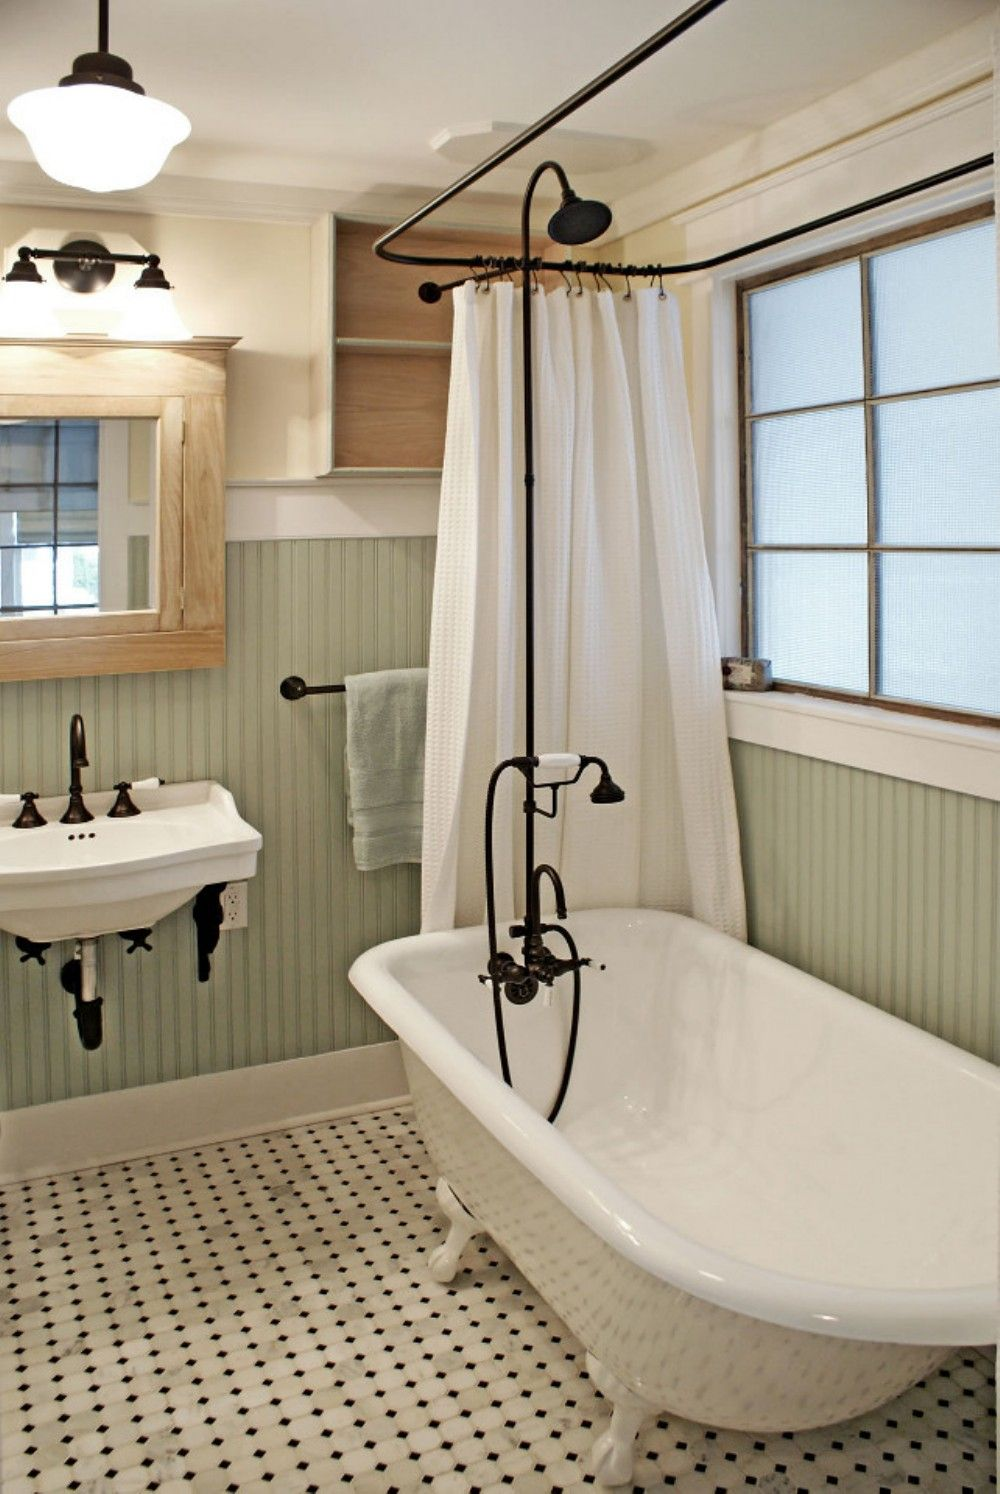 awesome 23 Amazing Ideas About Vintage Bathroom https   homedecort     awesome 23 Amazing Ideas About Vintage Bathroom  https   homedecort com 2017 04 23 amazing ideas about vintage bathroom